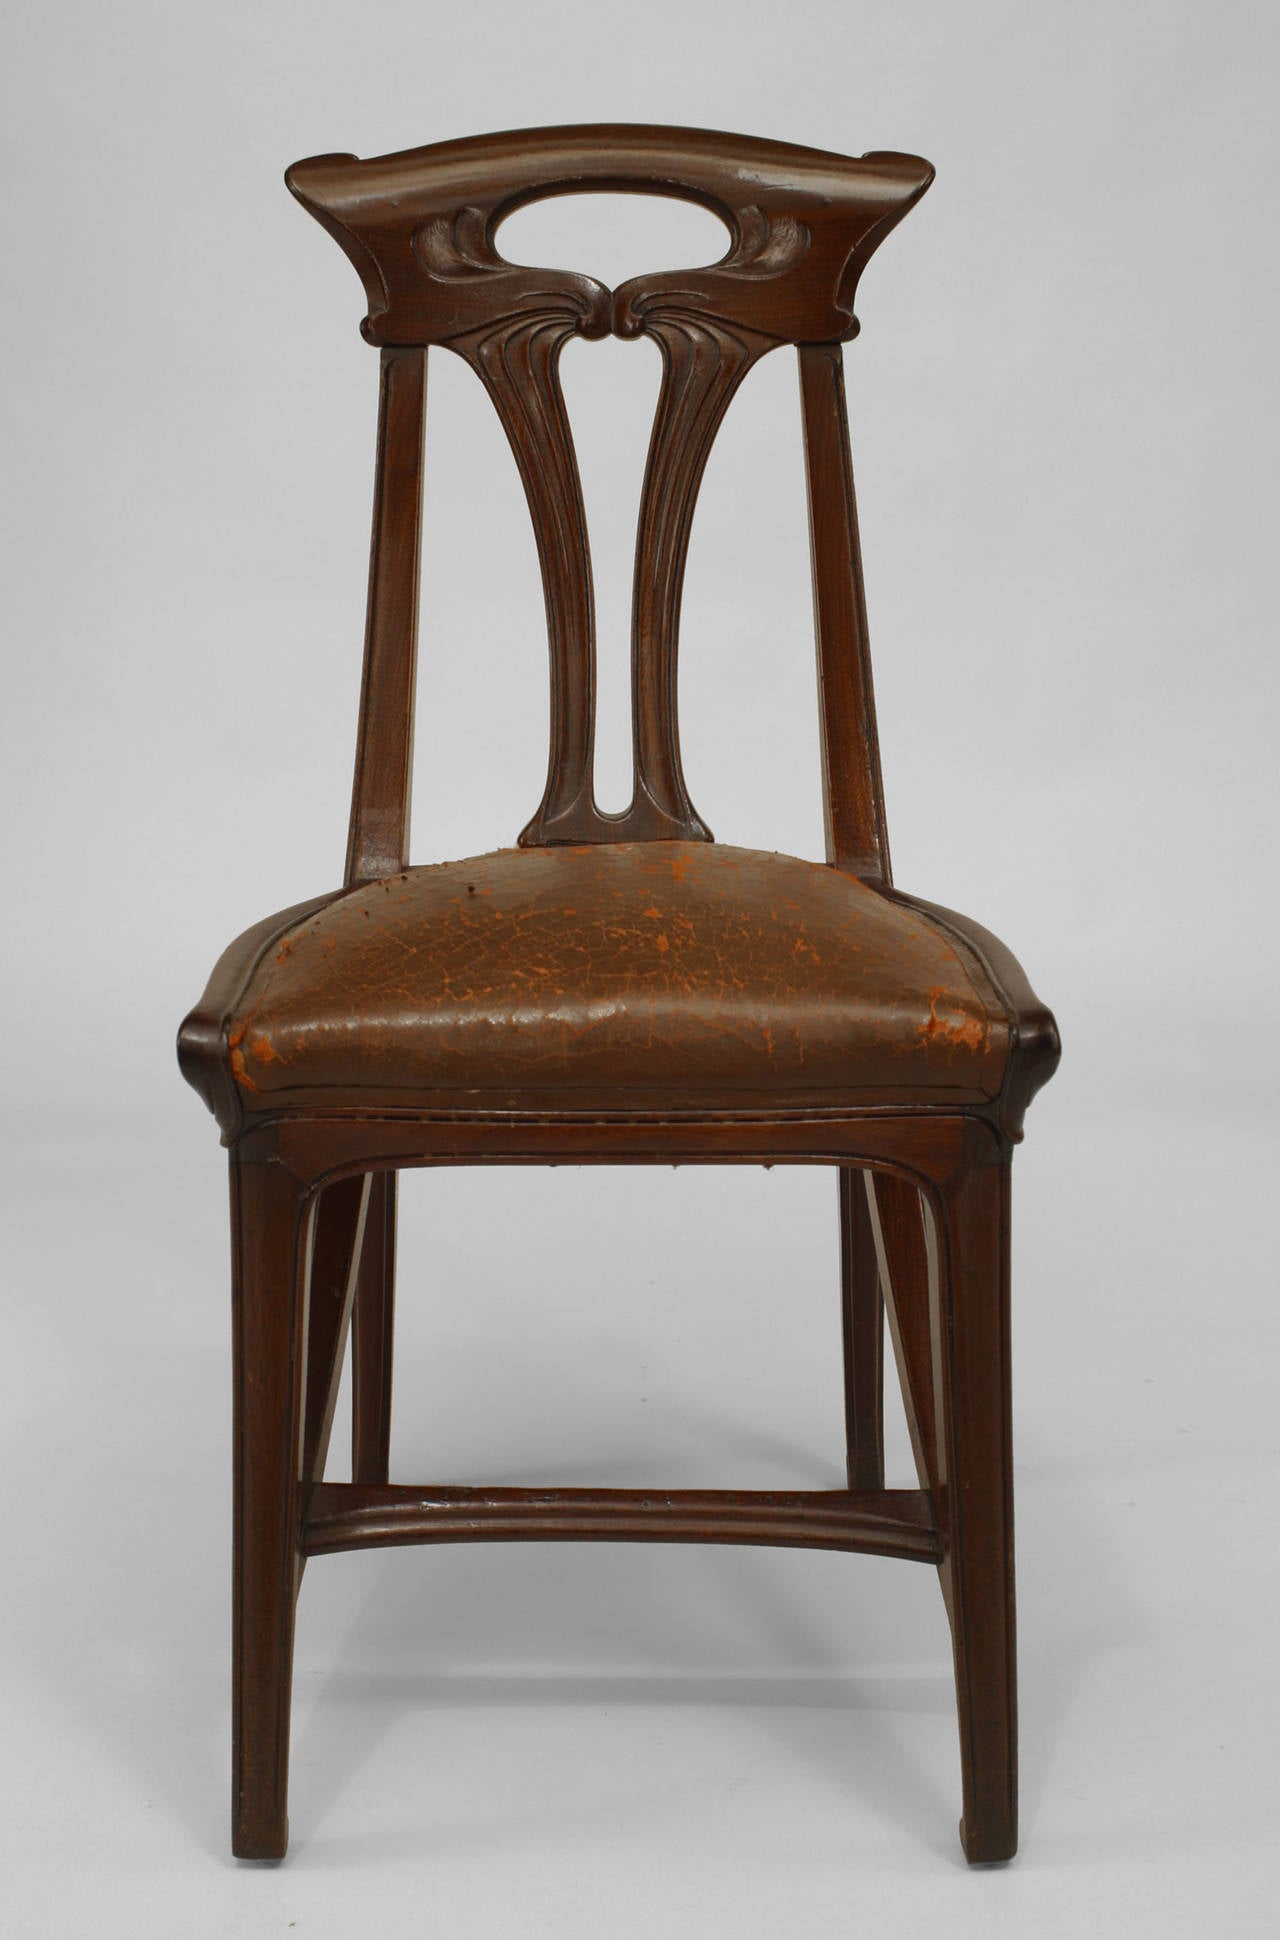 Rare original beech stained chair by eugene gaillard circa 1900 at - Set Of Four French Art Nouveau Walnut And Leather Side Chairs By Gaillard 3